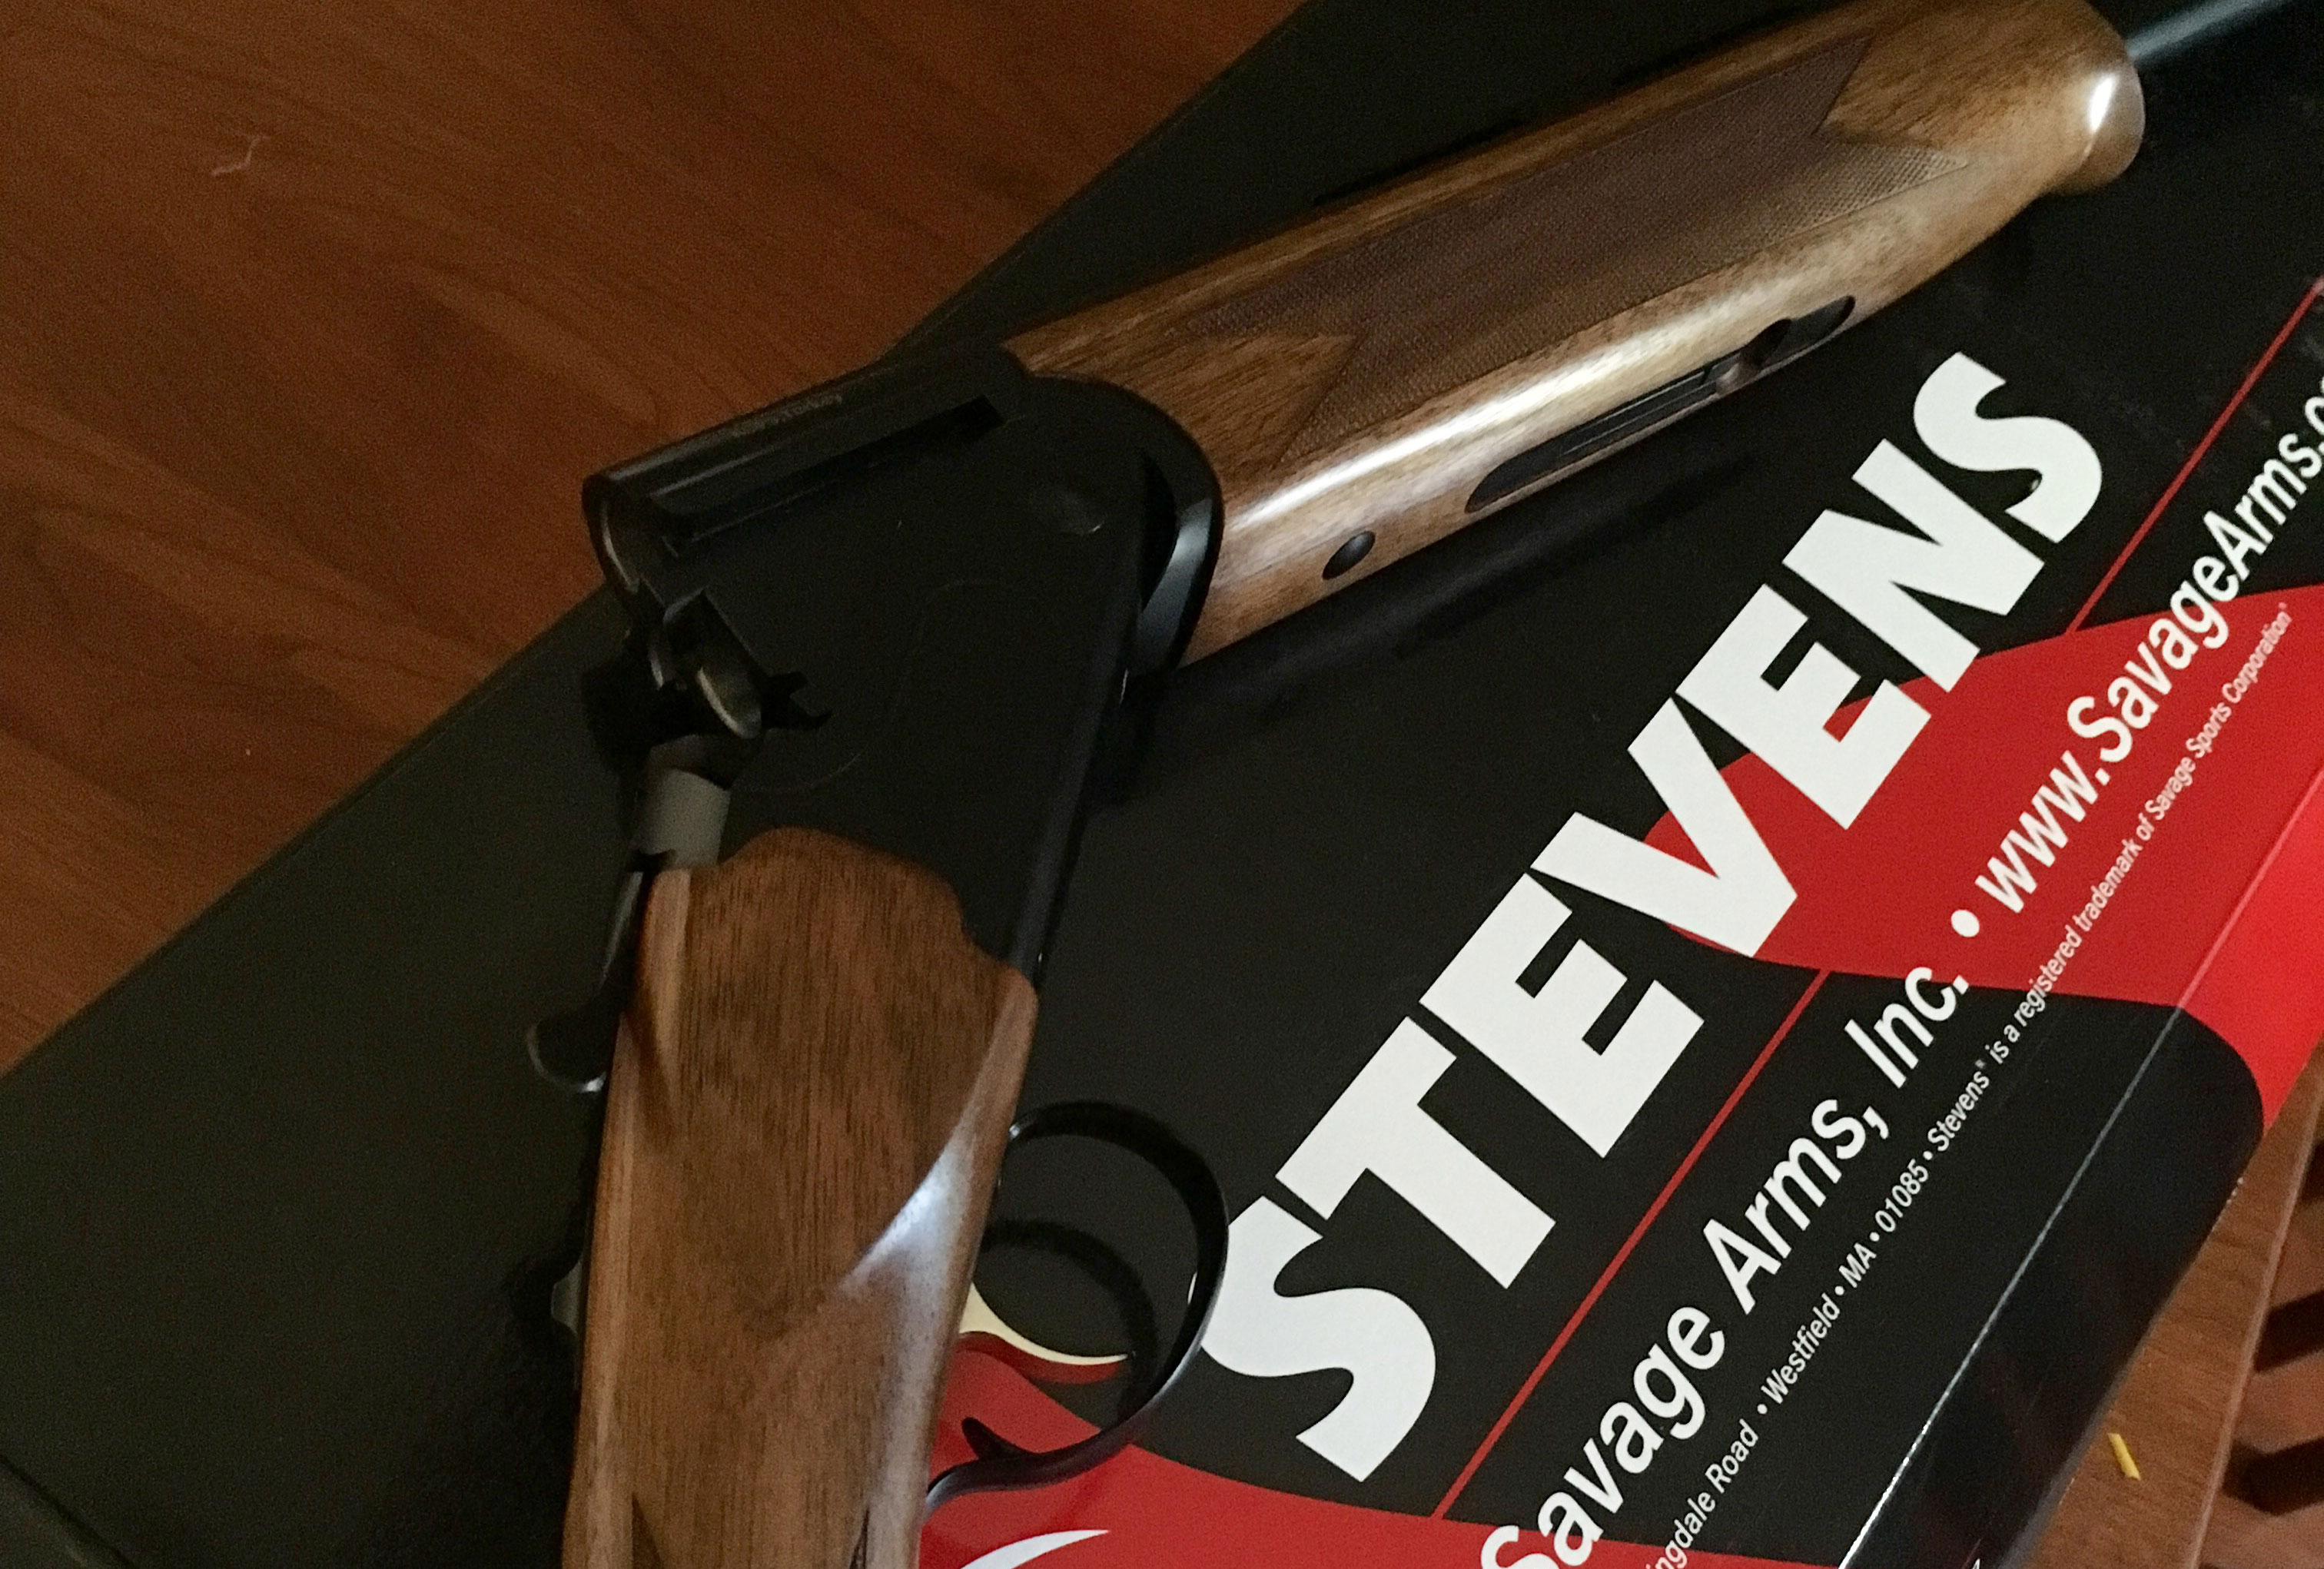 First Look: Stevens 555 Over and Under 20 Gauge Shotgun – The Will